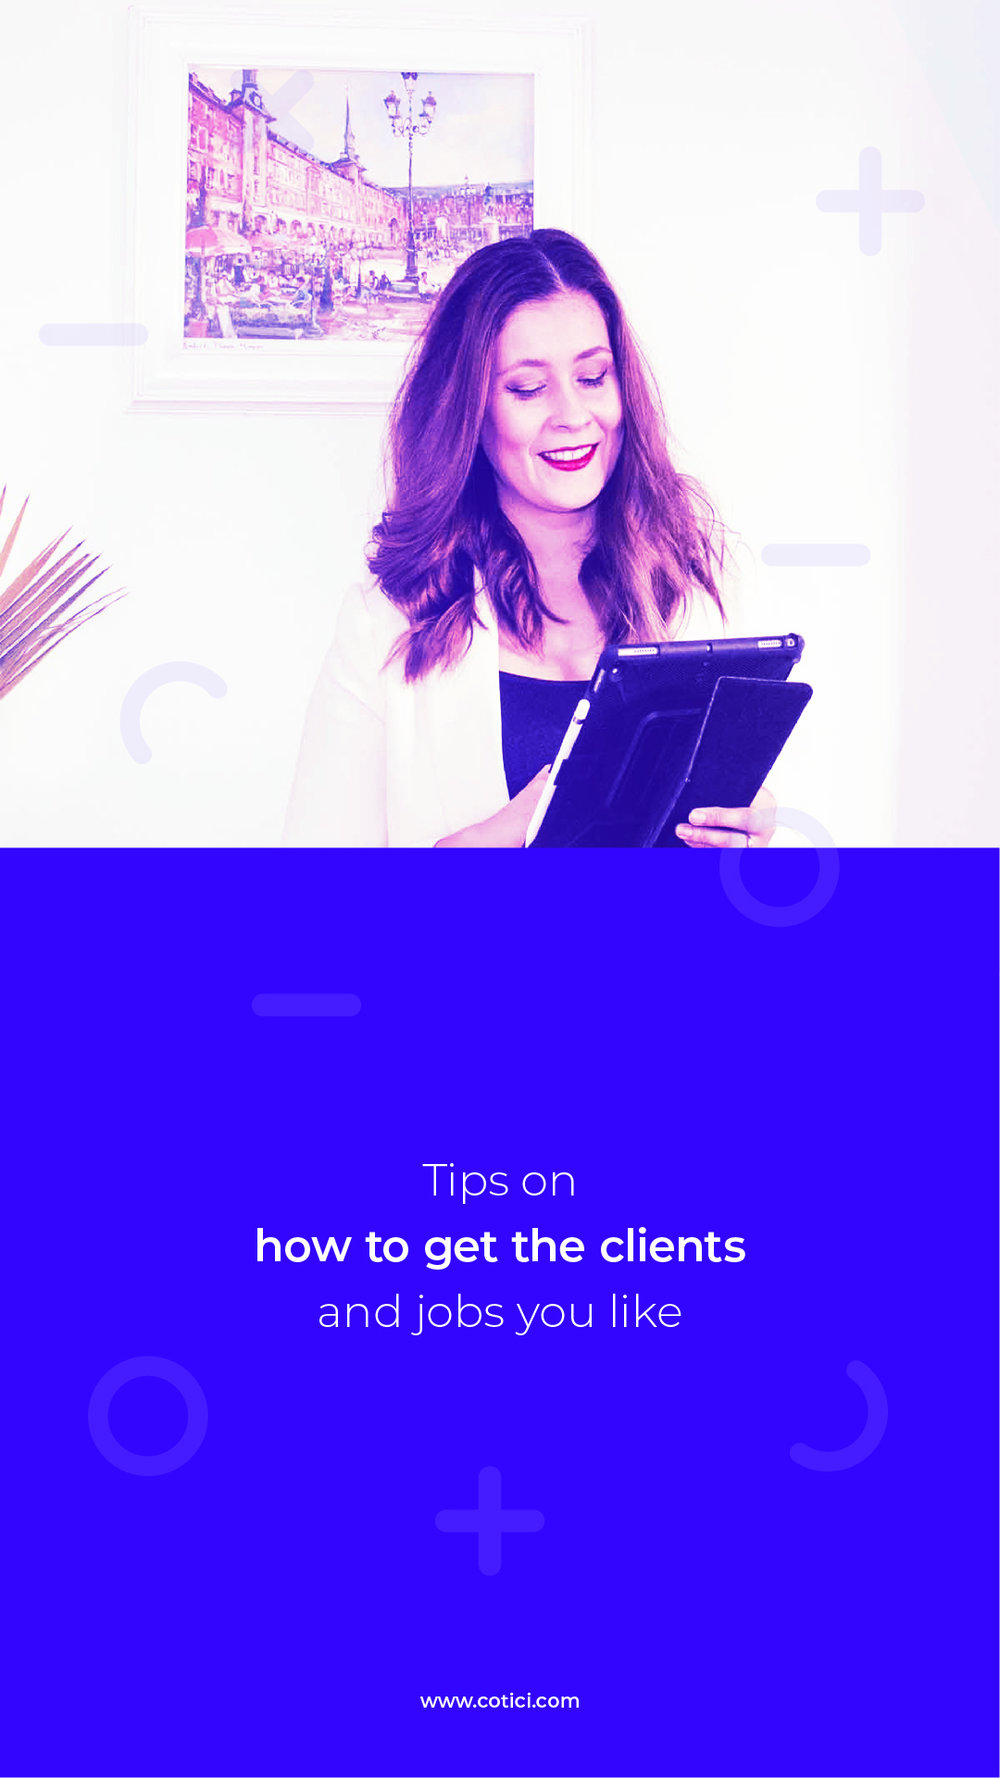 TIps on how to get the clients and jobs you like.jpg